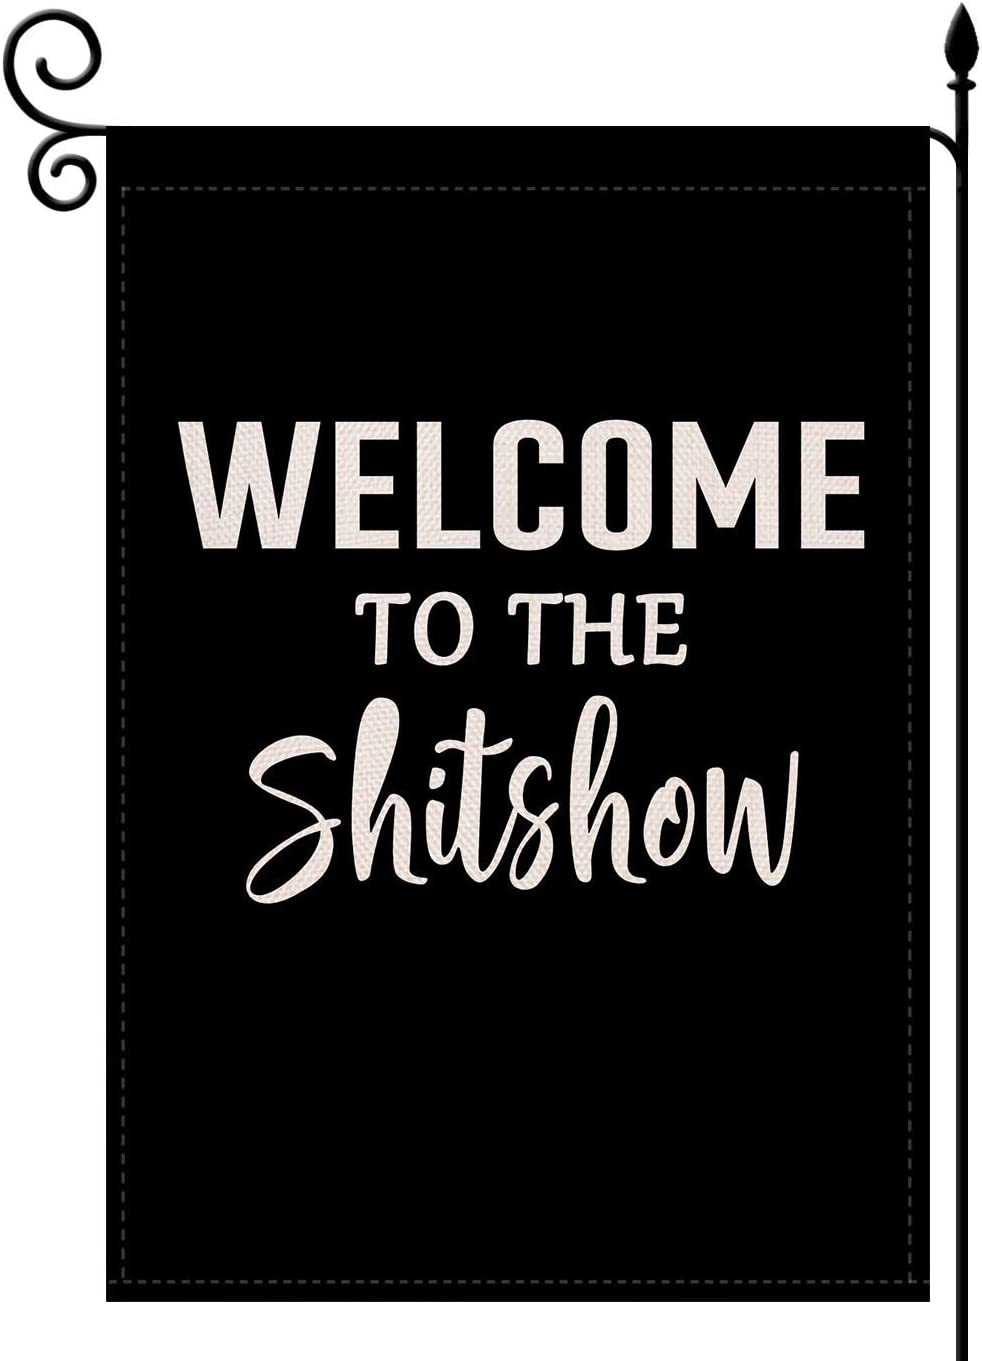 Welcome to The Shitshow Garden Flag,Double Sided Premium Fabric, Decorative Flags for Parade Sports Game Family Party Garden Yard Lawn 12.5 x 18 inch